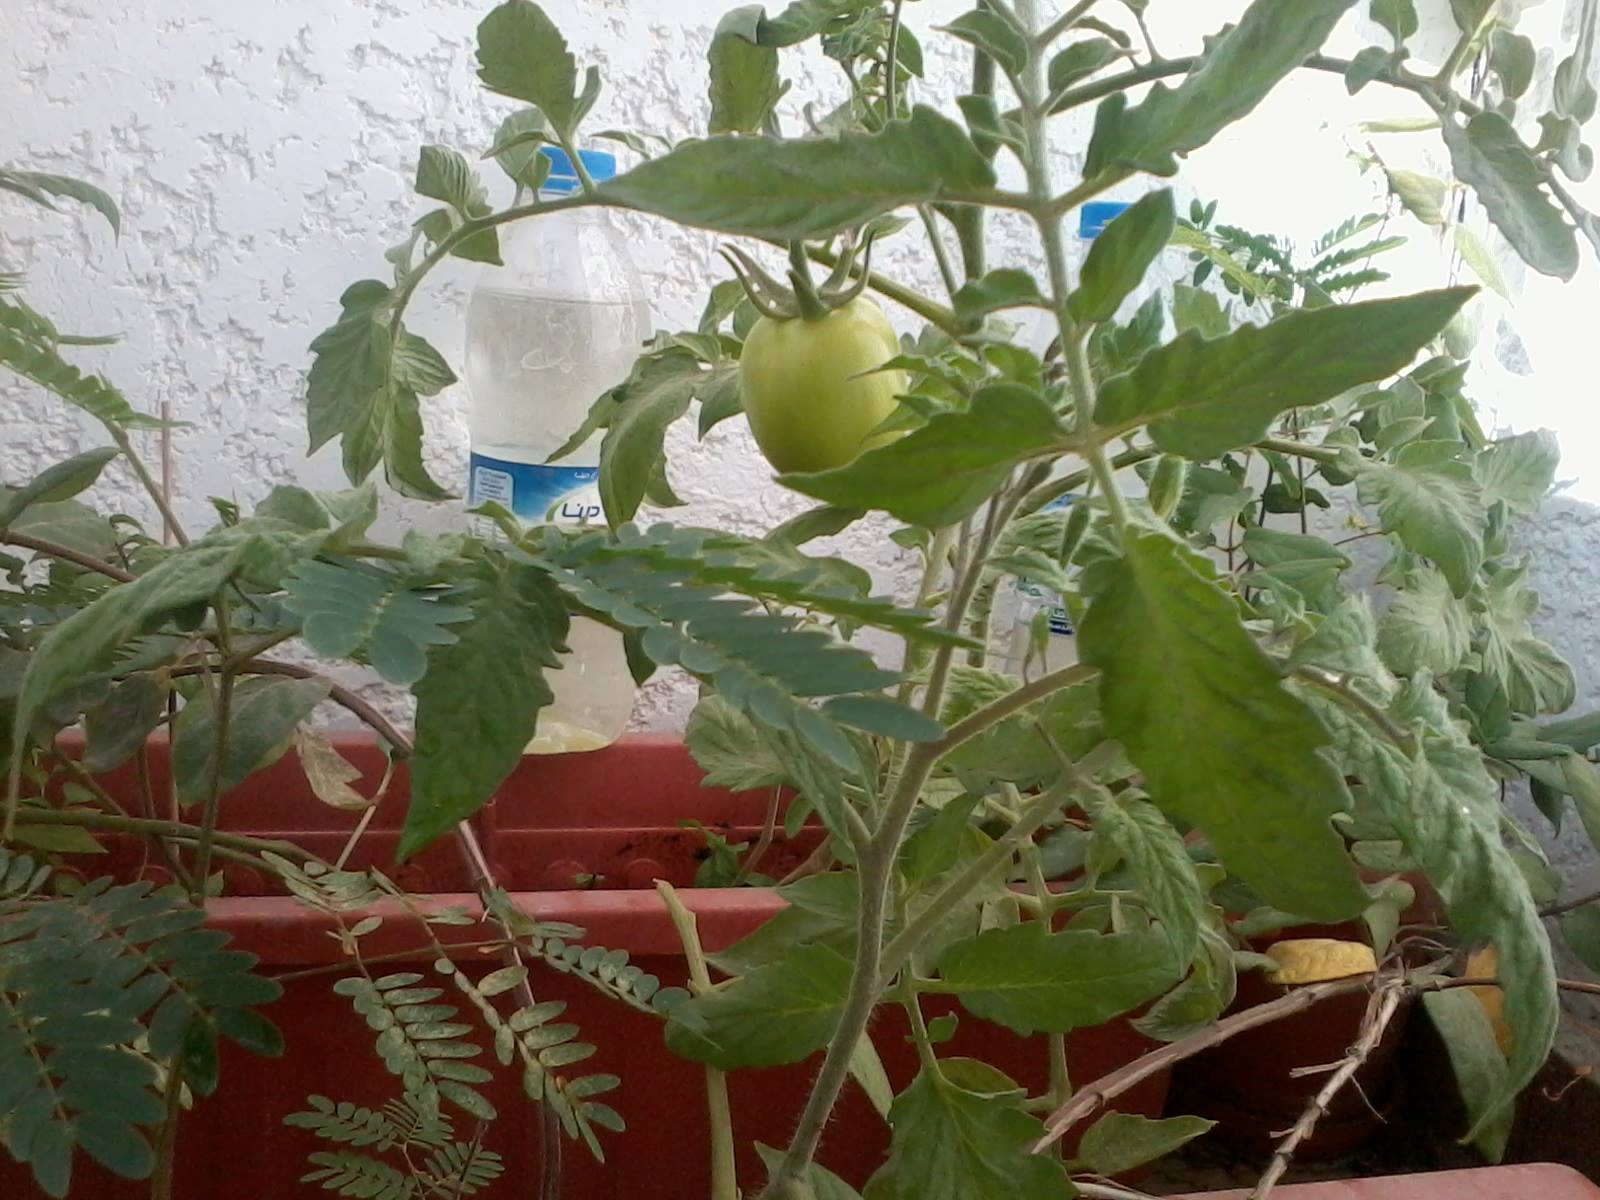 Tomato Gardening - Seeds To the Fruit